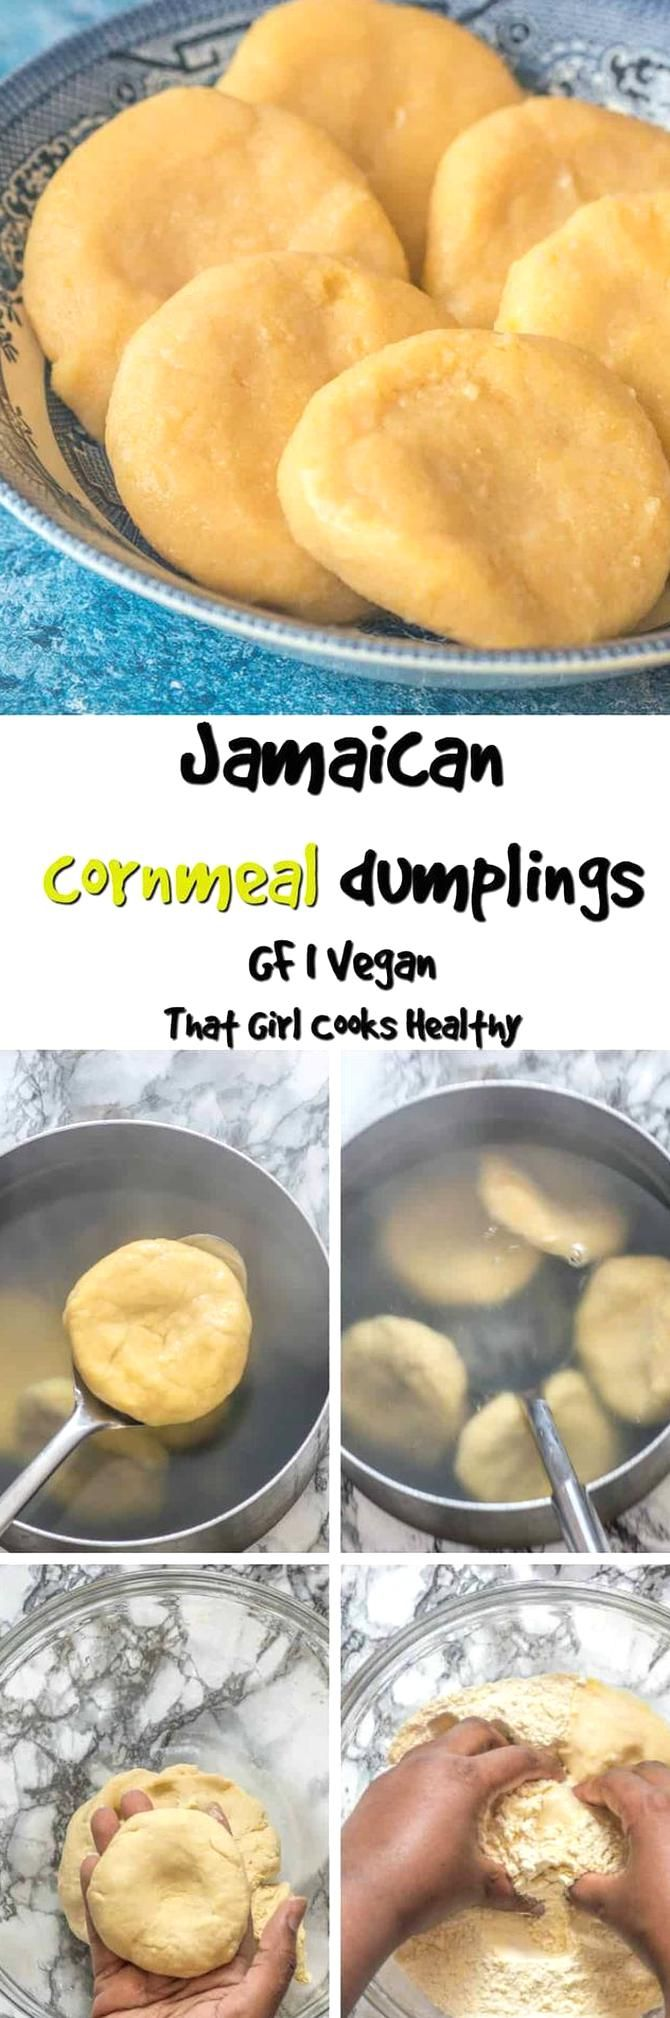 these jamaican cornmeal dumplings are so quick and easy